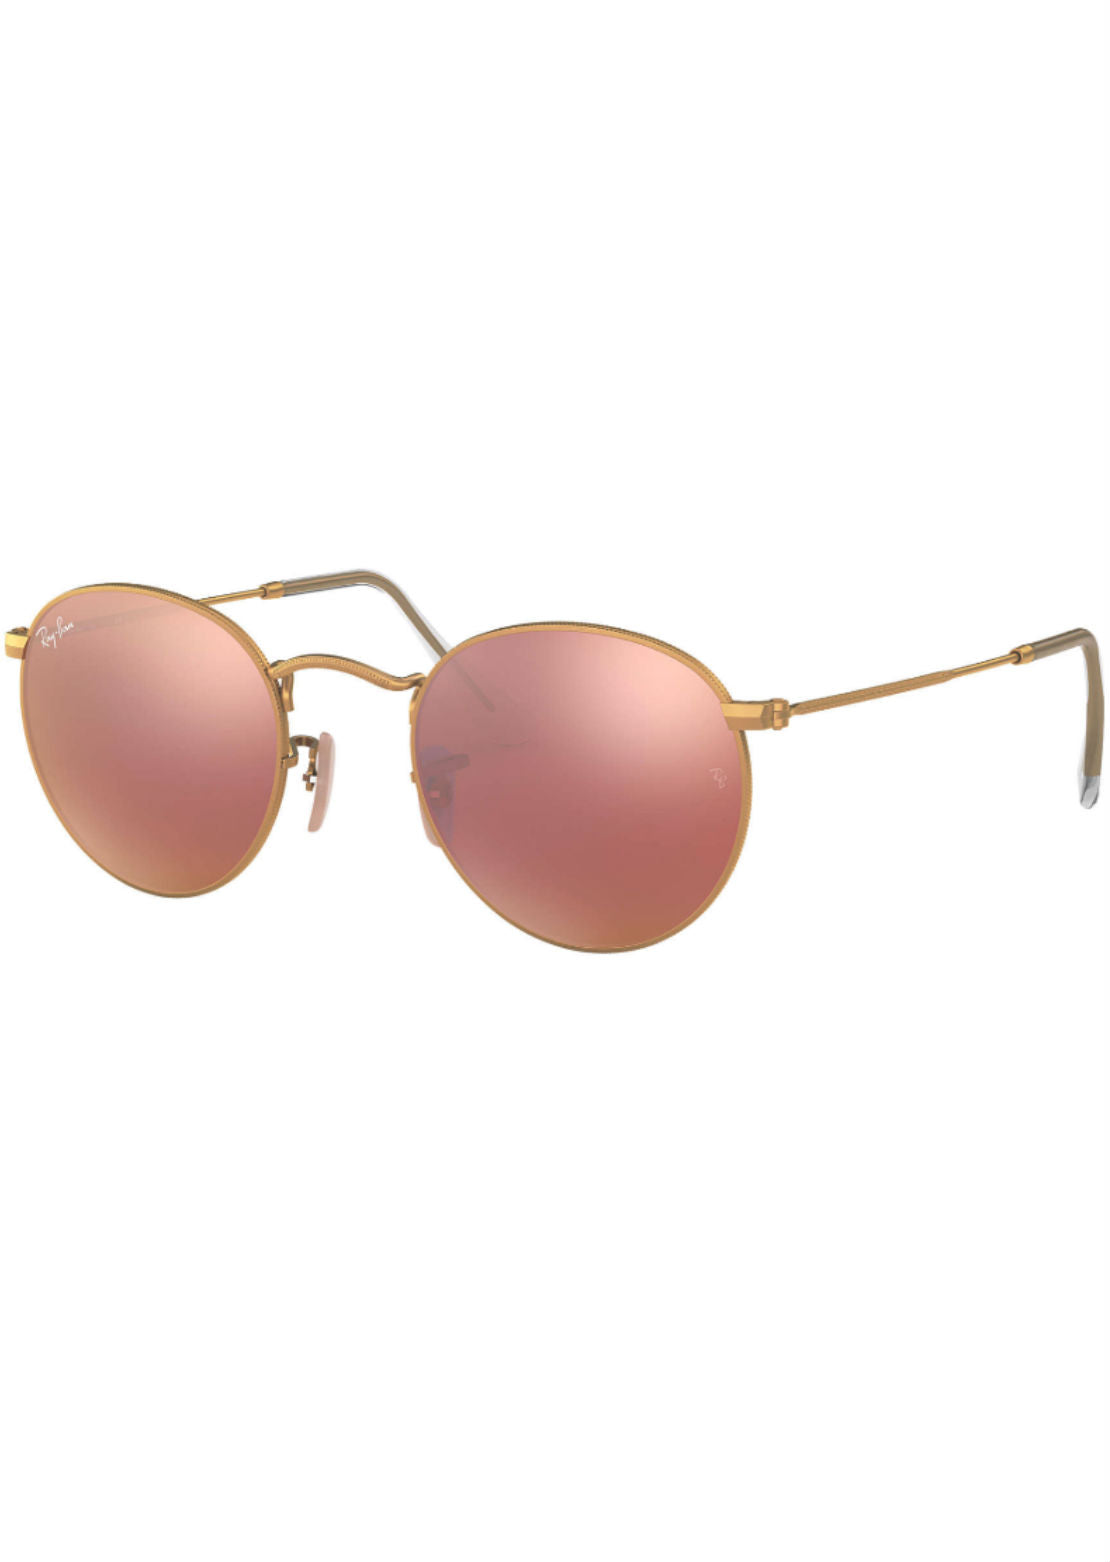 Ray Ban Round Metal RB3447 Sunglasses